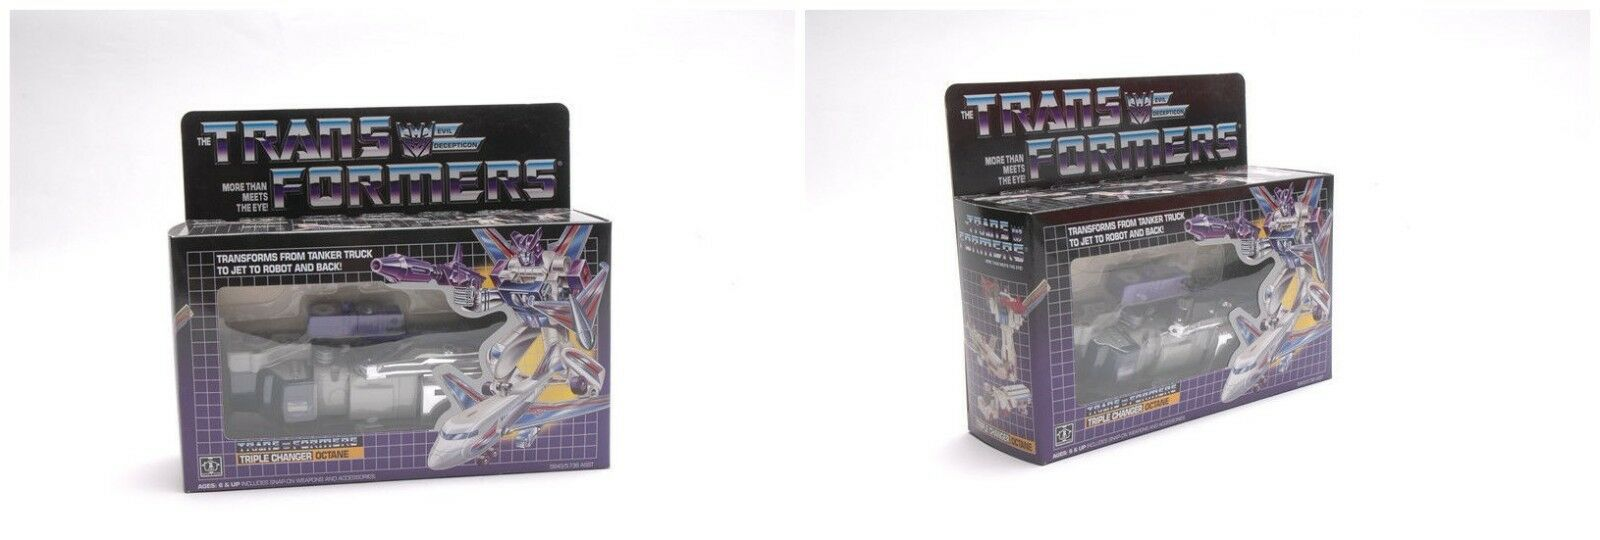 Transformers Reissued G1 OctaneTriple Changer Vintage Christmas Gift Toy